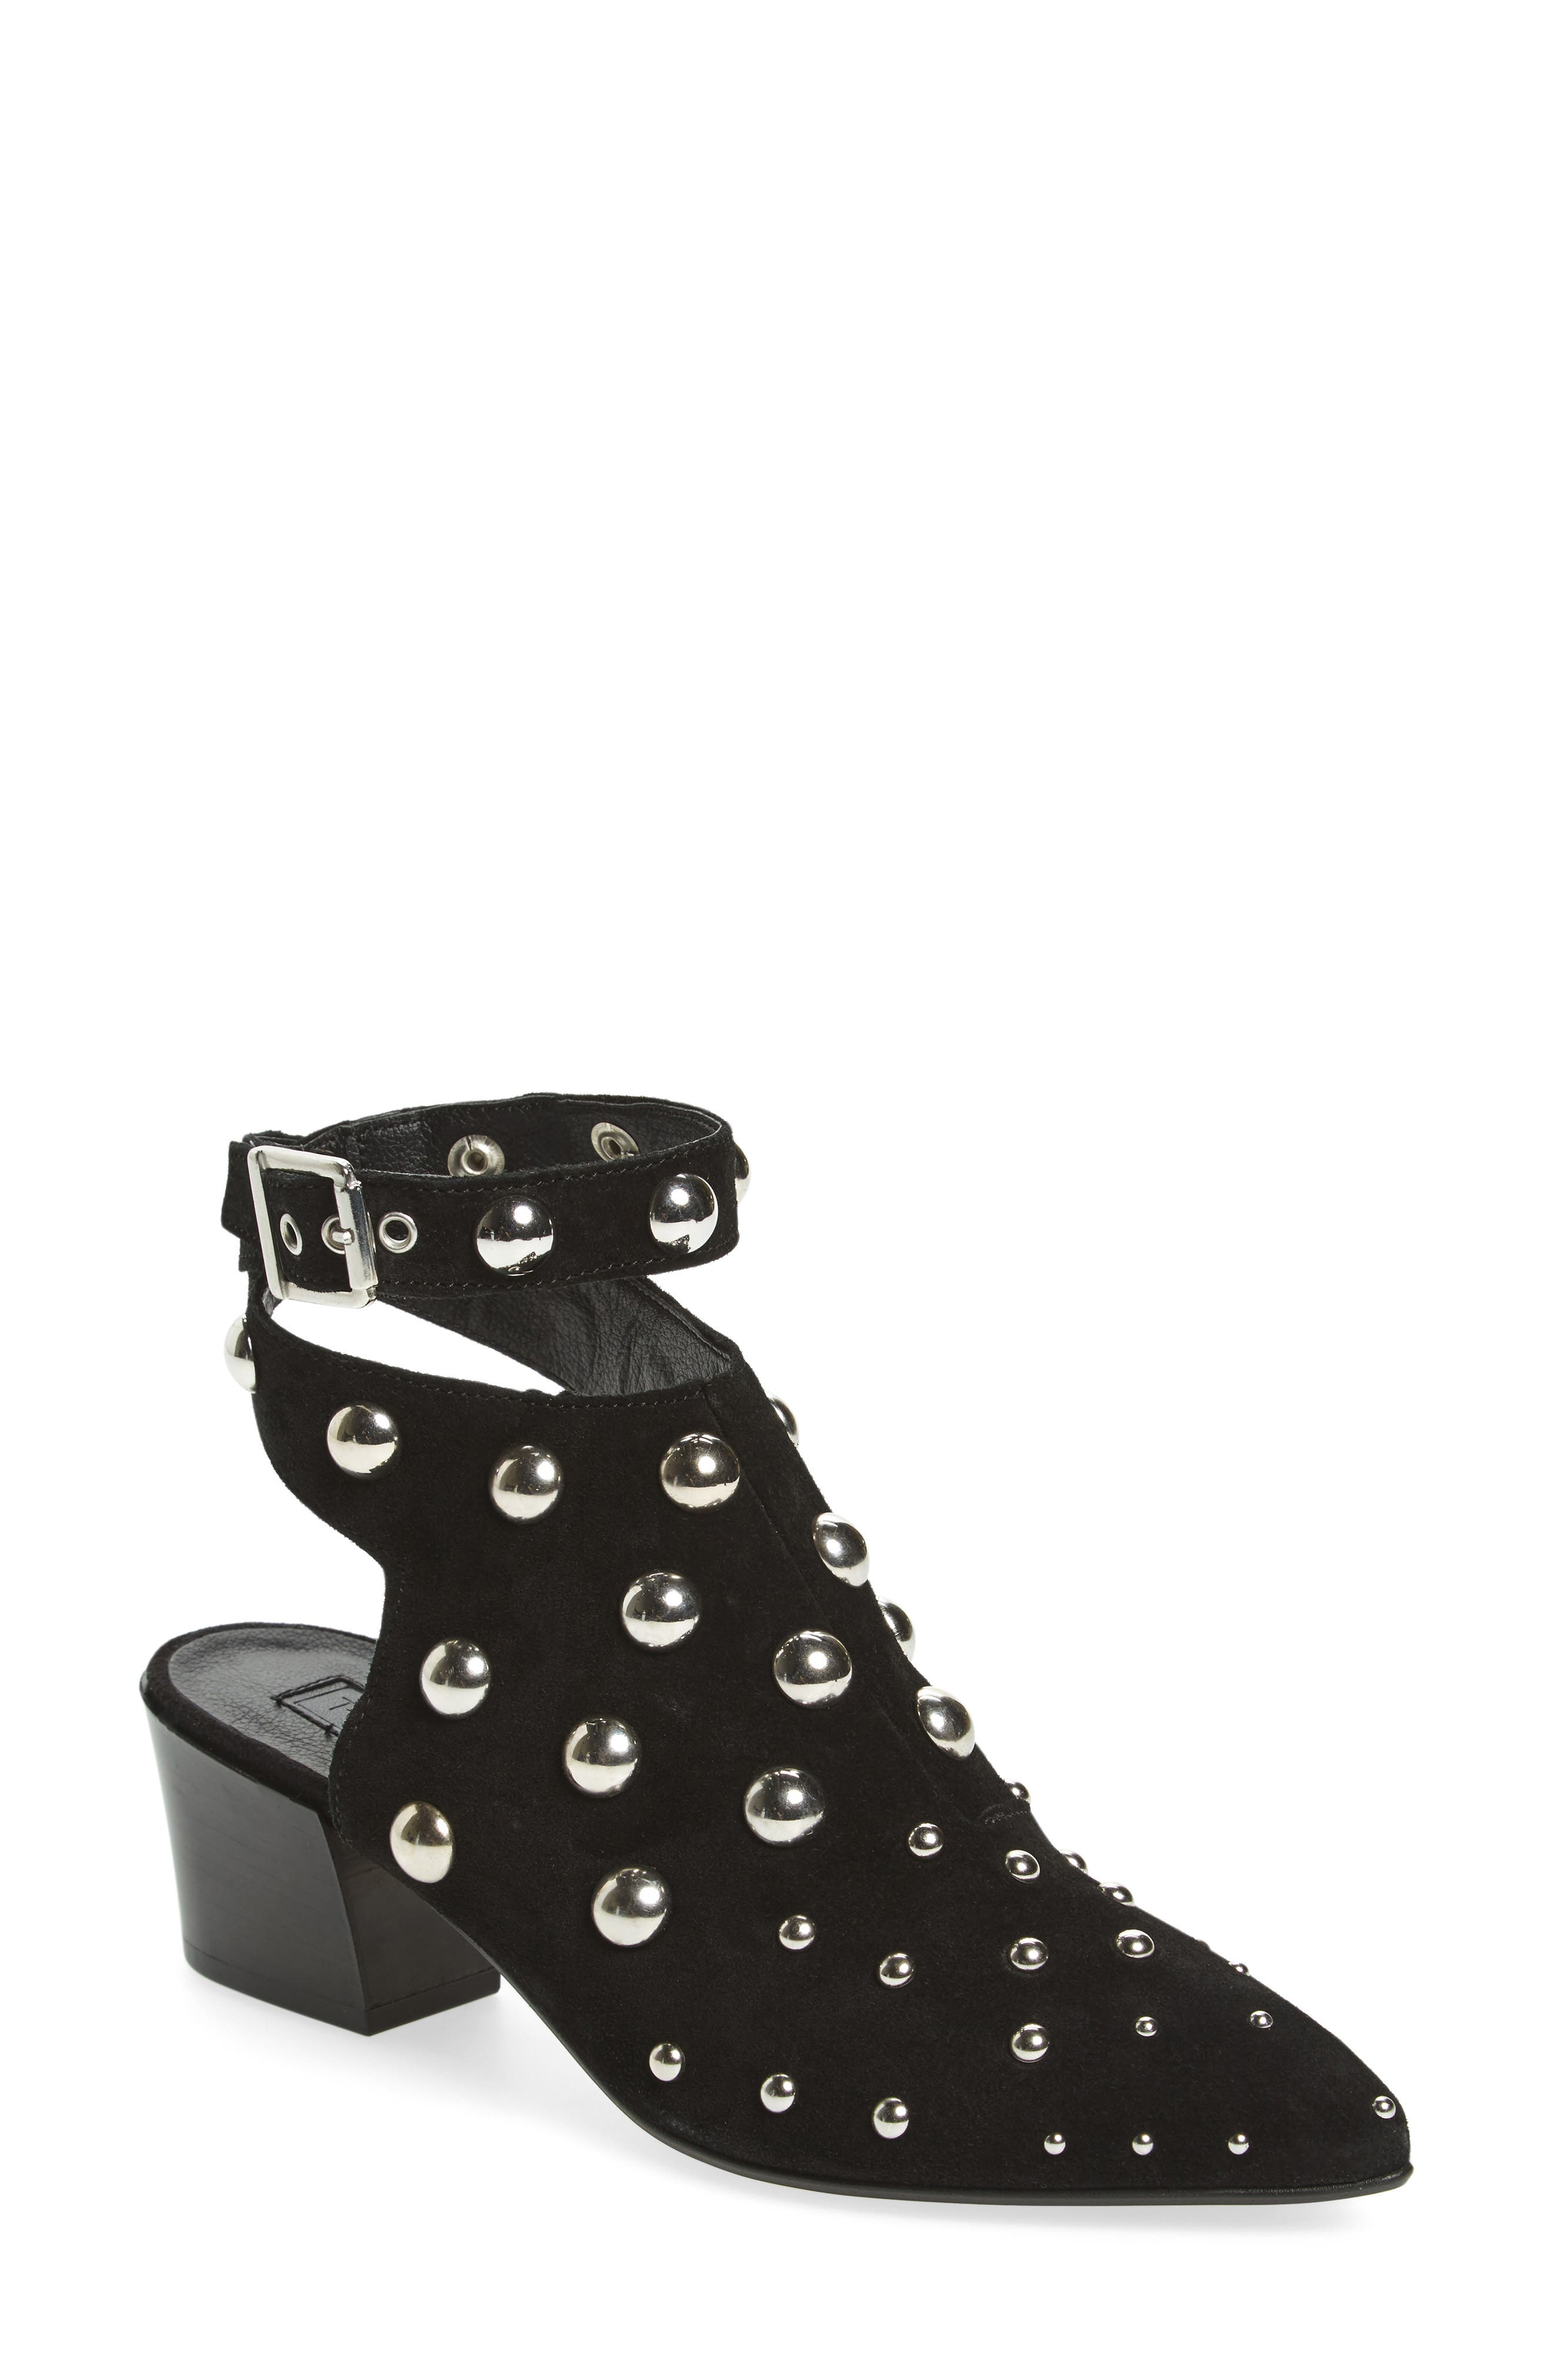 Madness Studded Wraparound Bootie,                         Main,                         color, Black